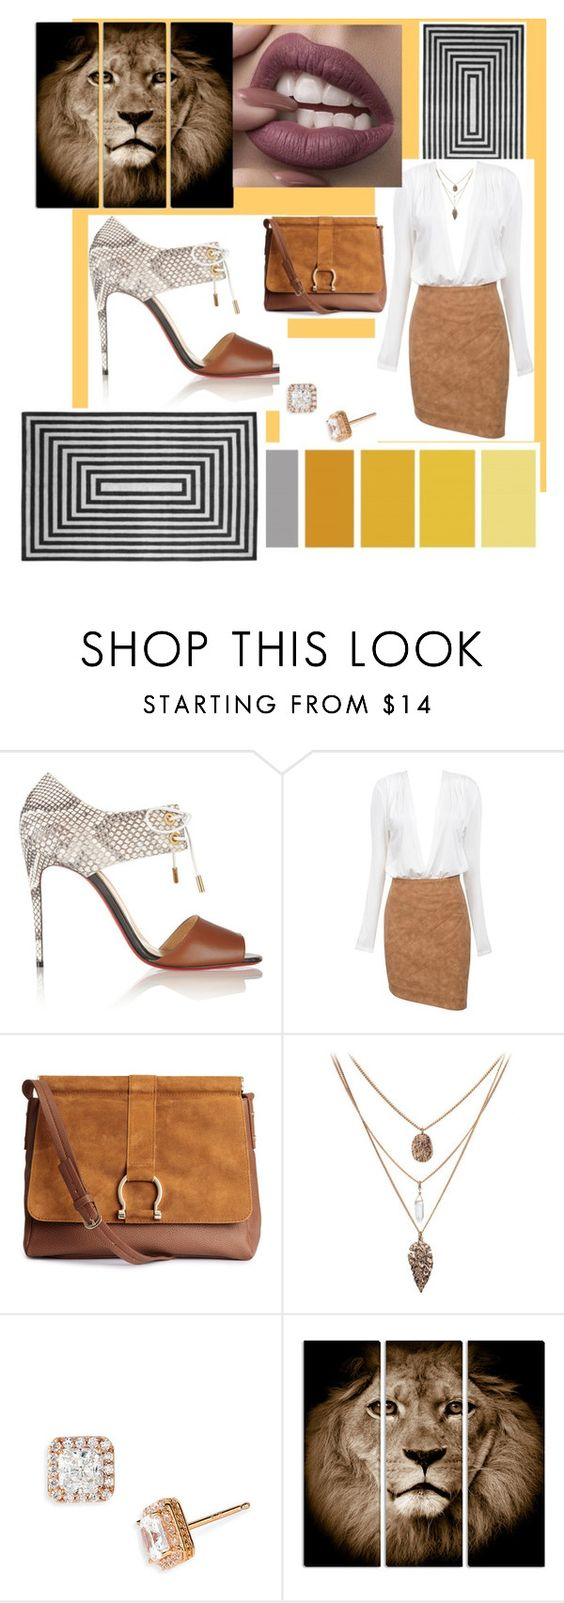 """""""Mystify"""" by krissybob ❤ liked on Polyvore featuring Christian Louboutin, H&M and Nordstrom"""